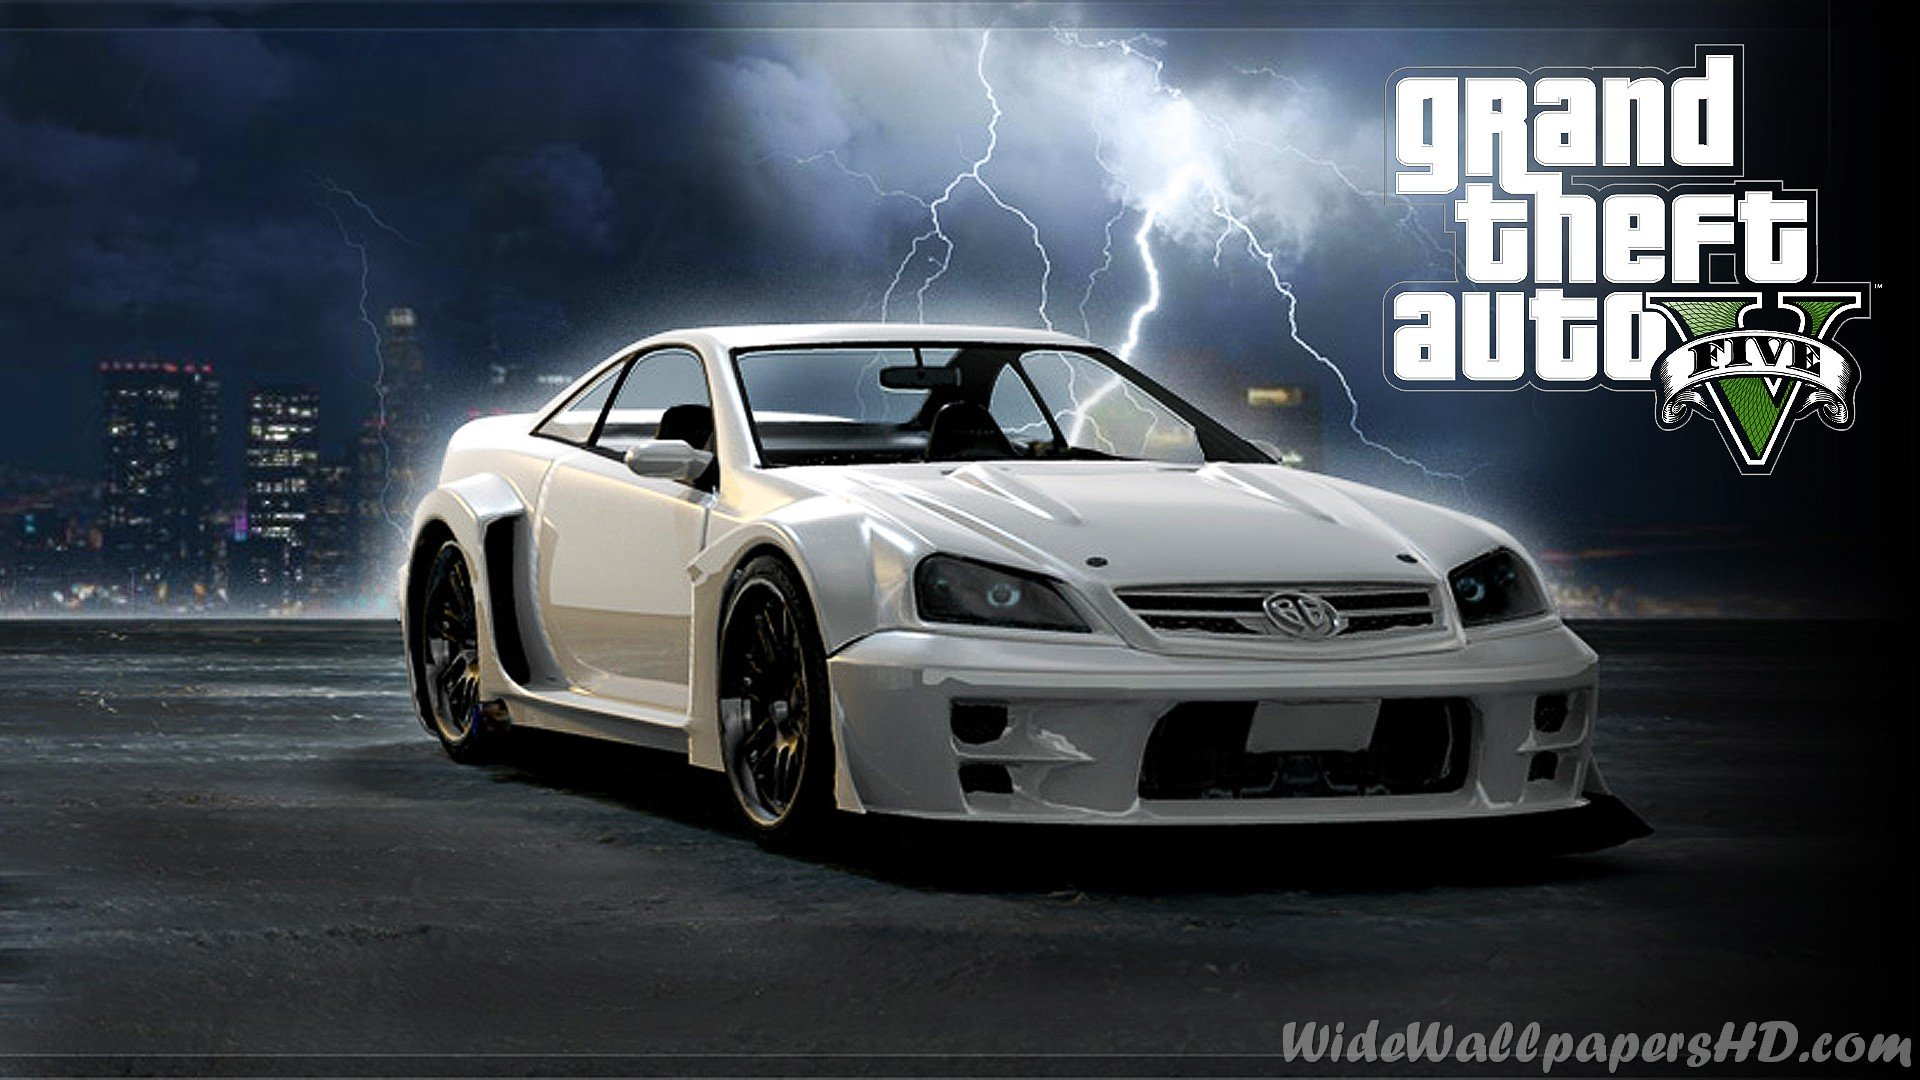 Gta 5 Wallpaper Cars